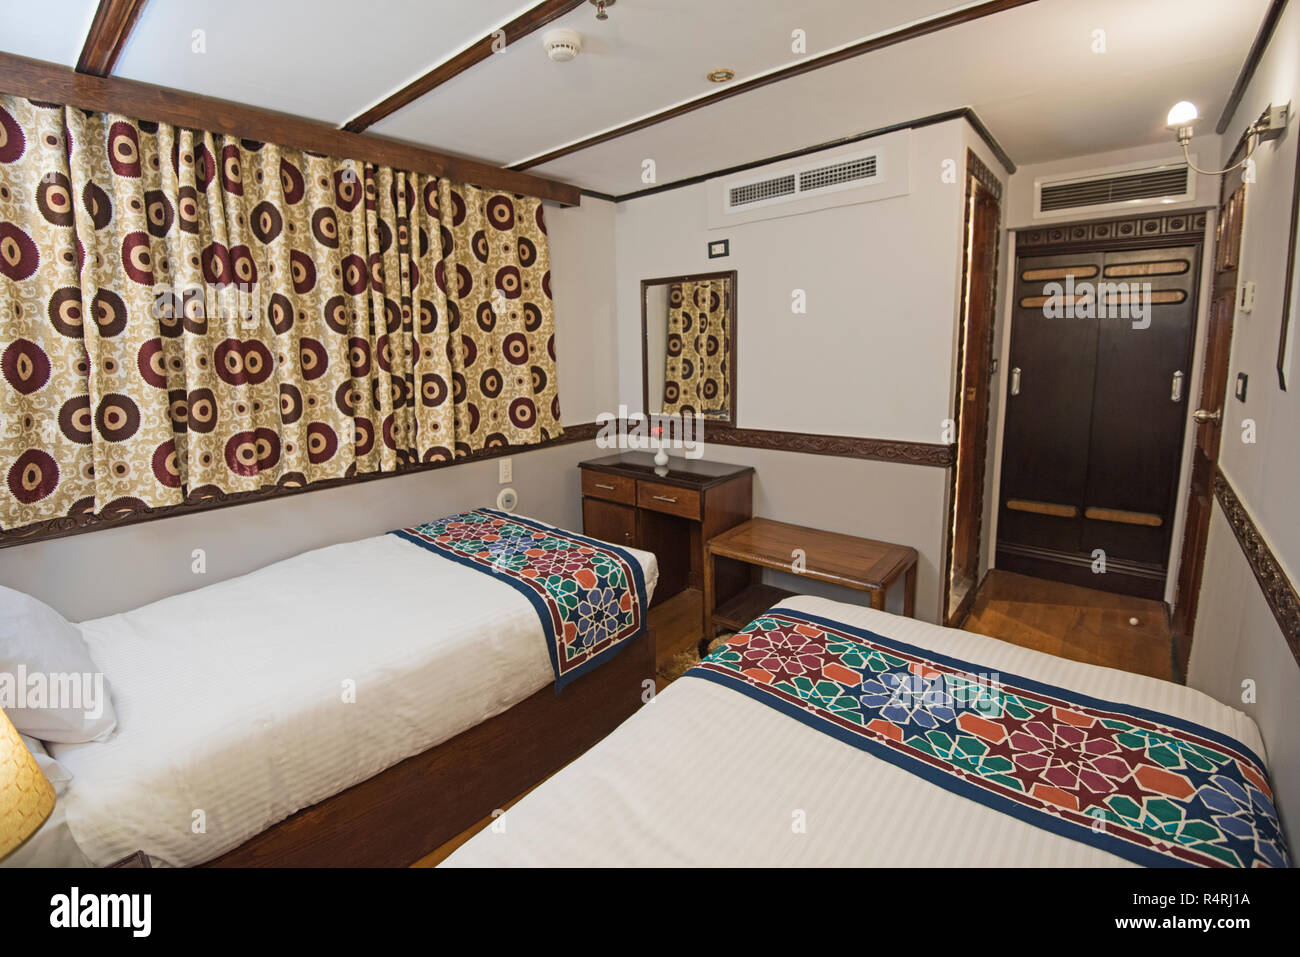 Twin Beds In Cabin Of A Luxury Private Motor Yacht Stock Photo Alamy